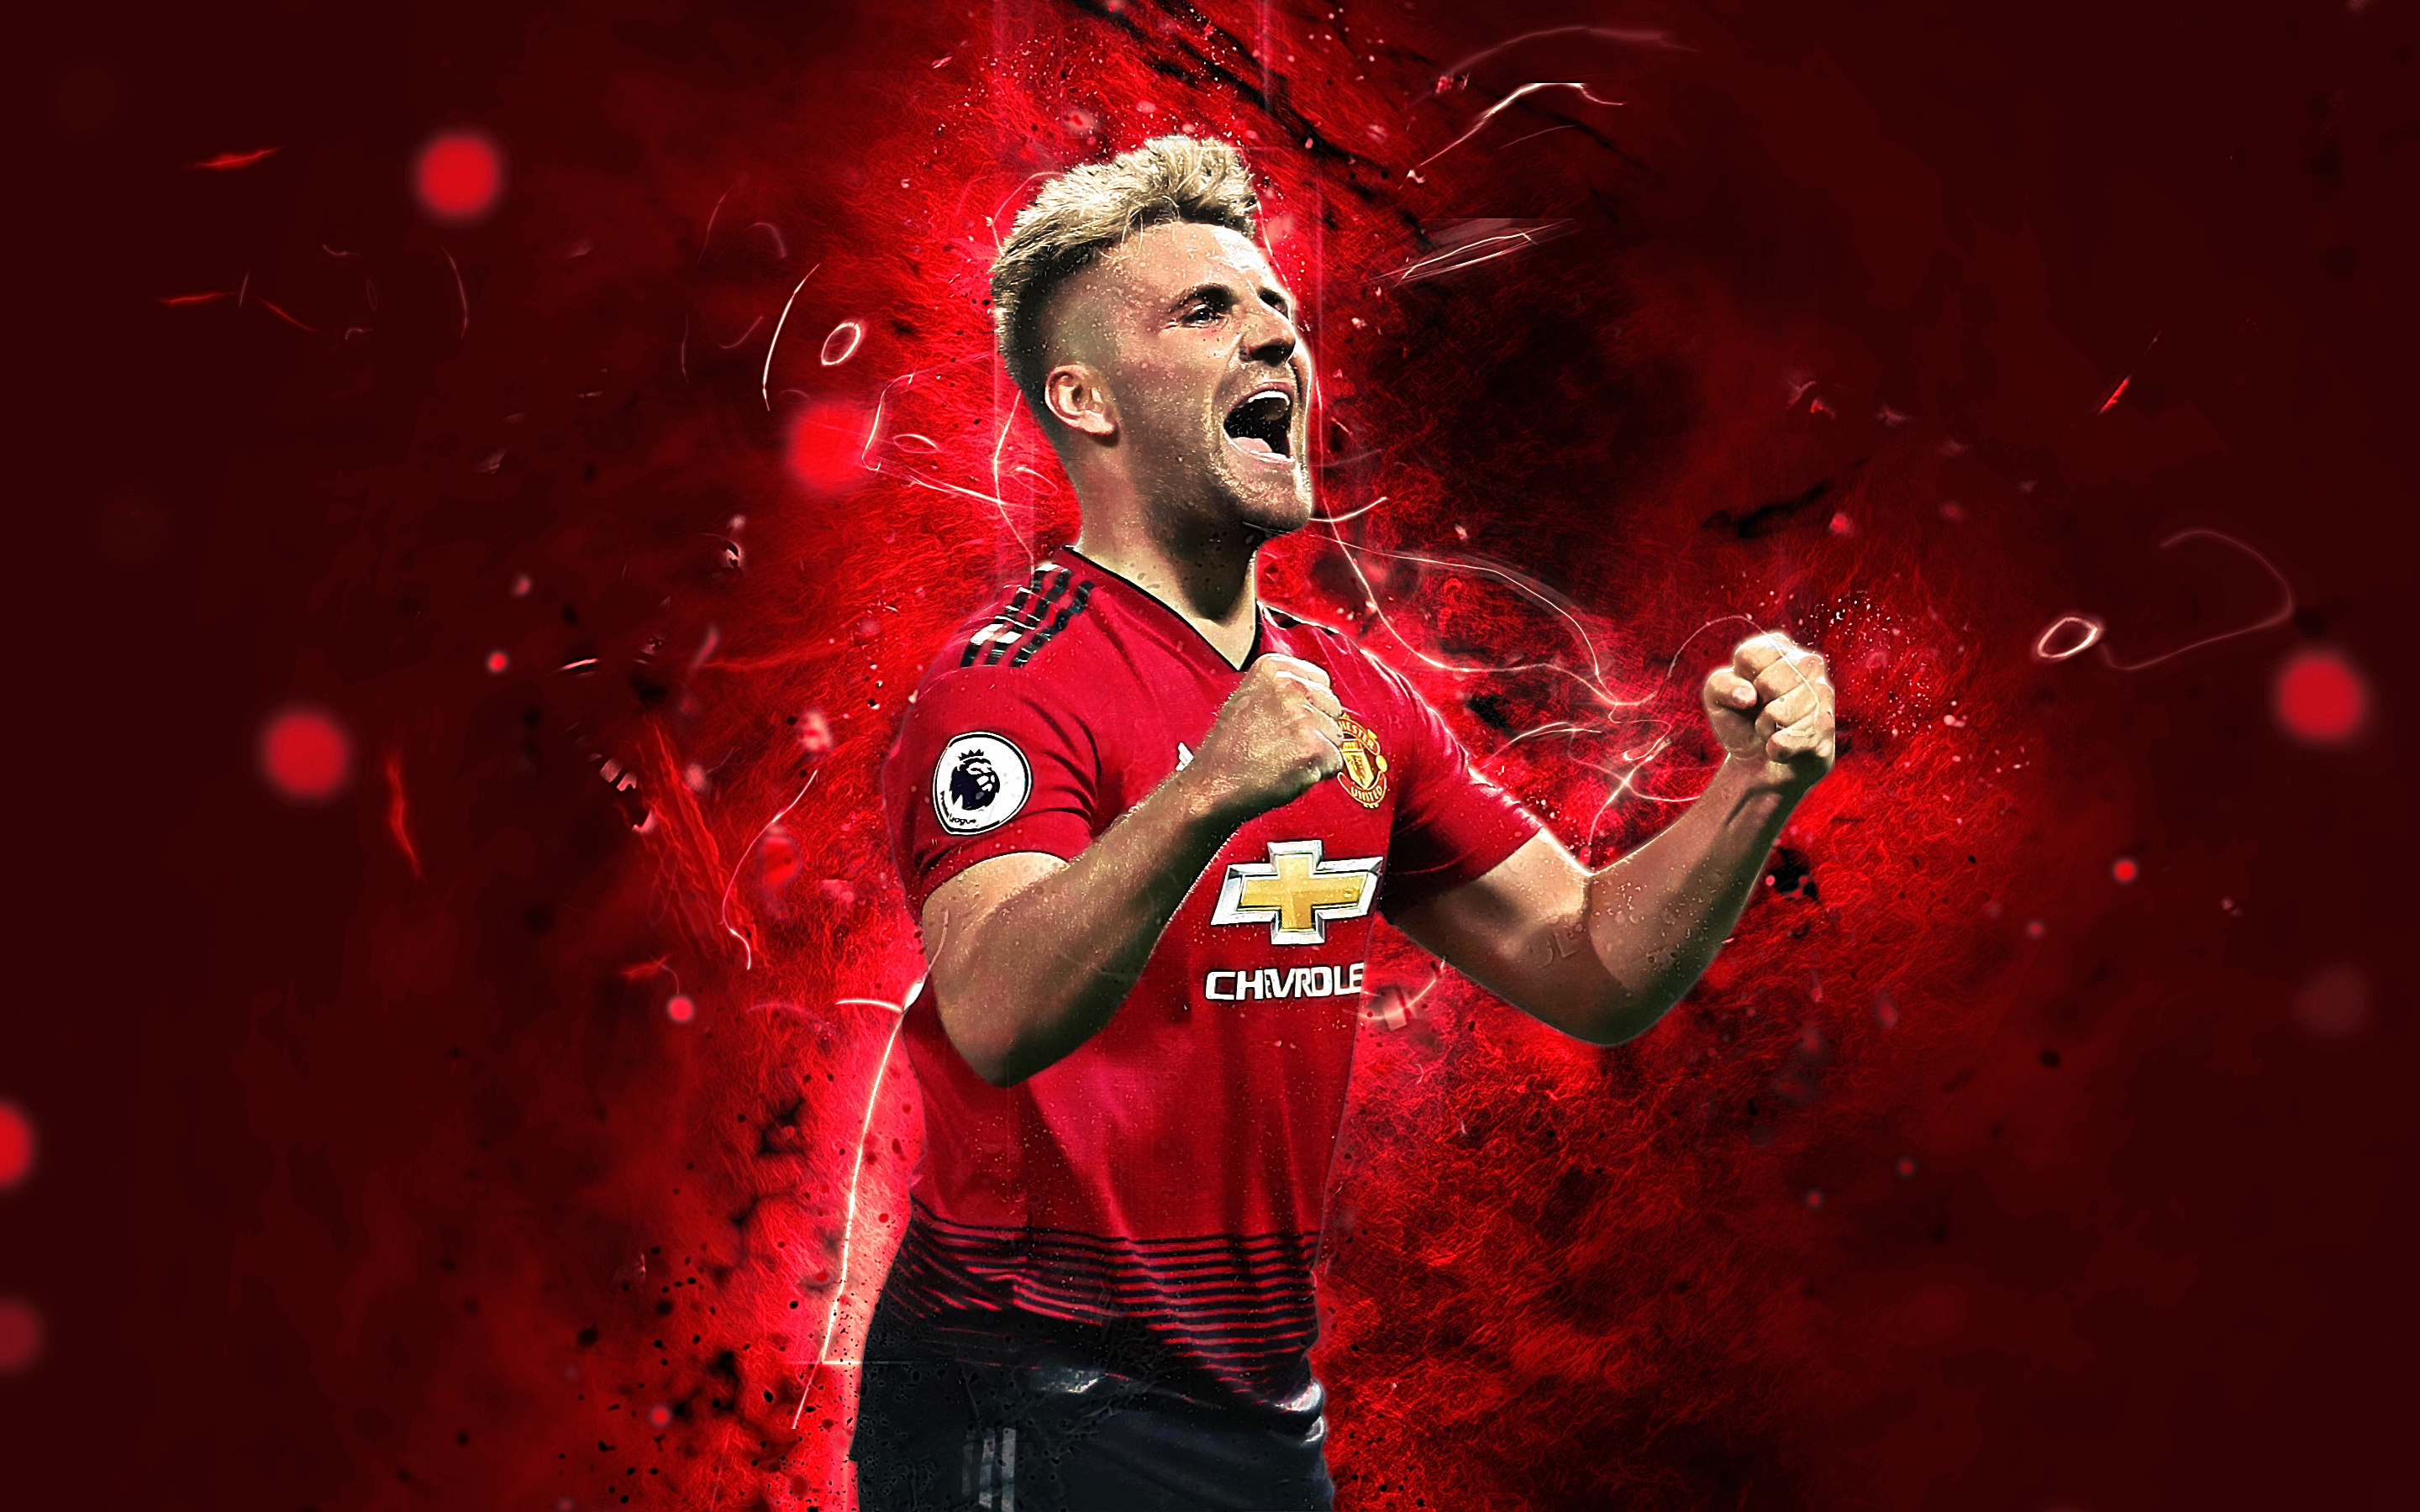 Luke Shaw HD Wallpaper Background Image 2880x1800 ID978768 2880x1800